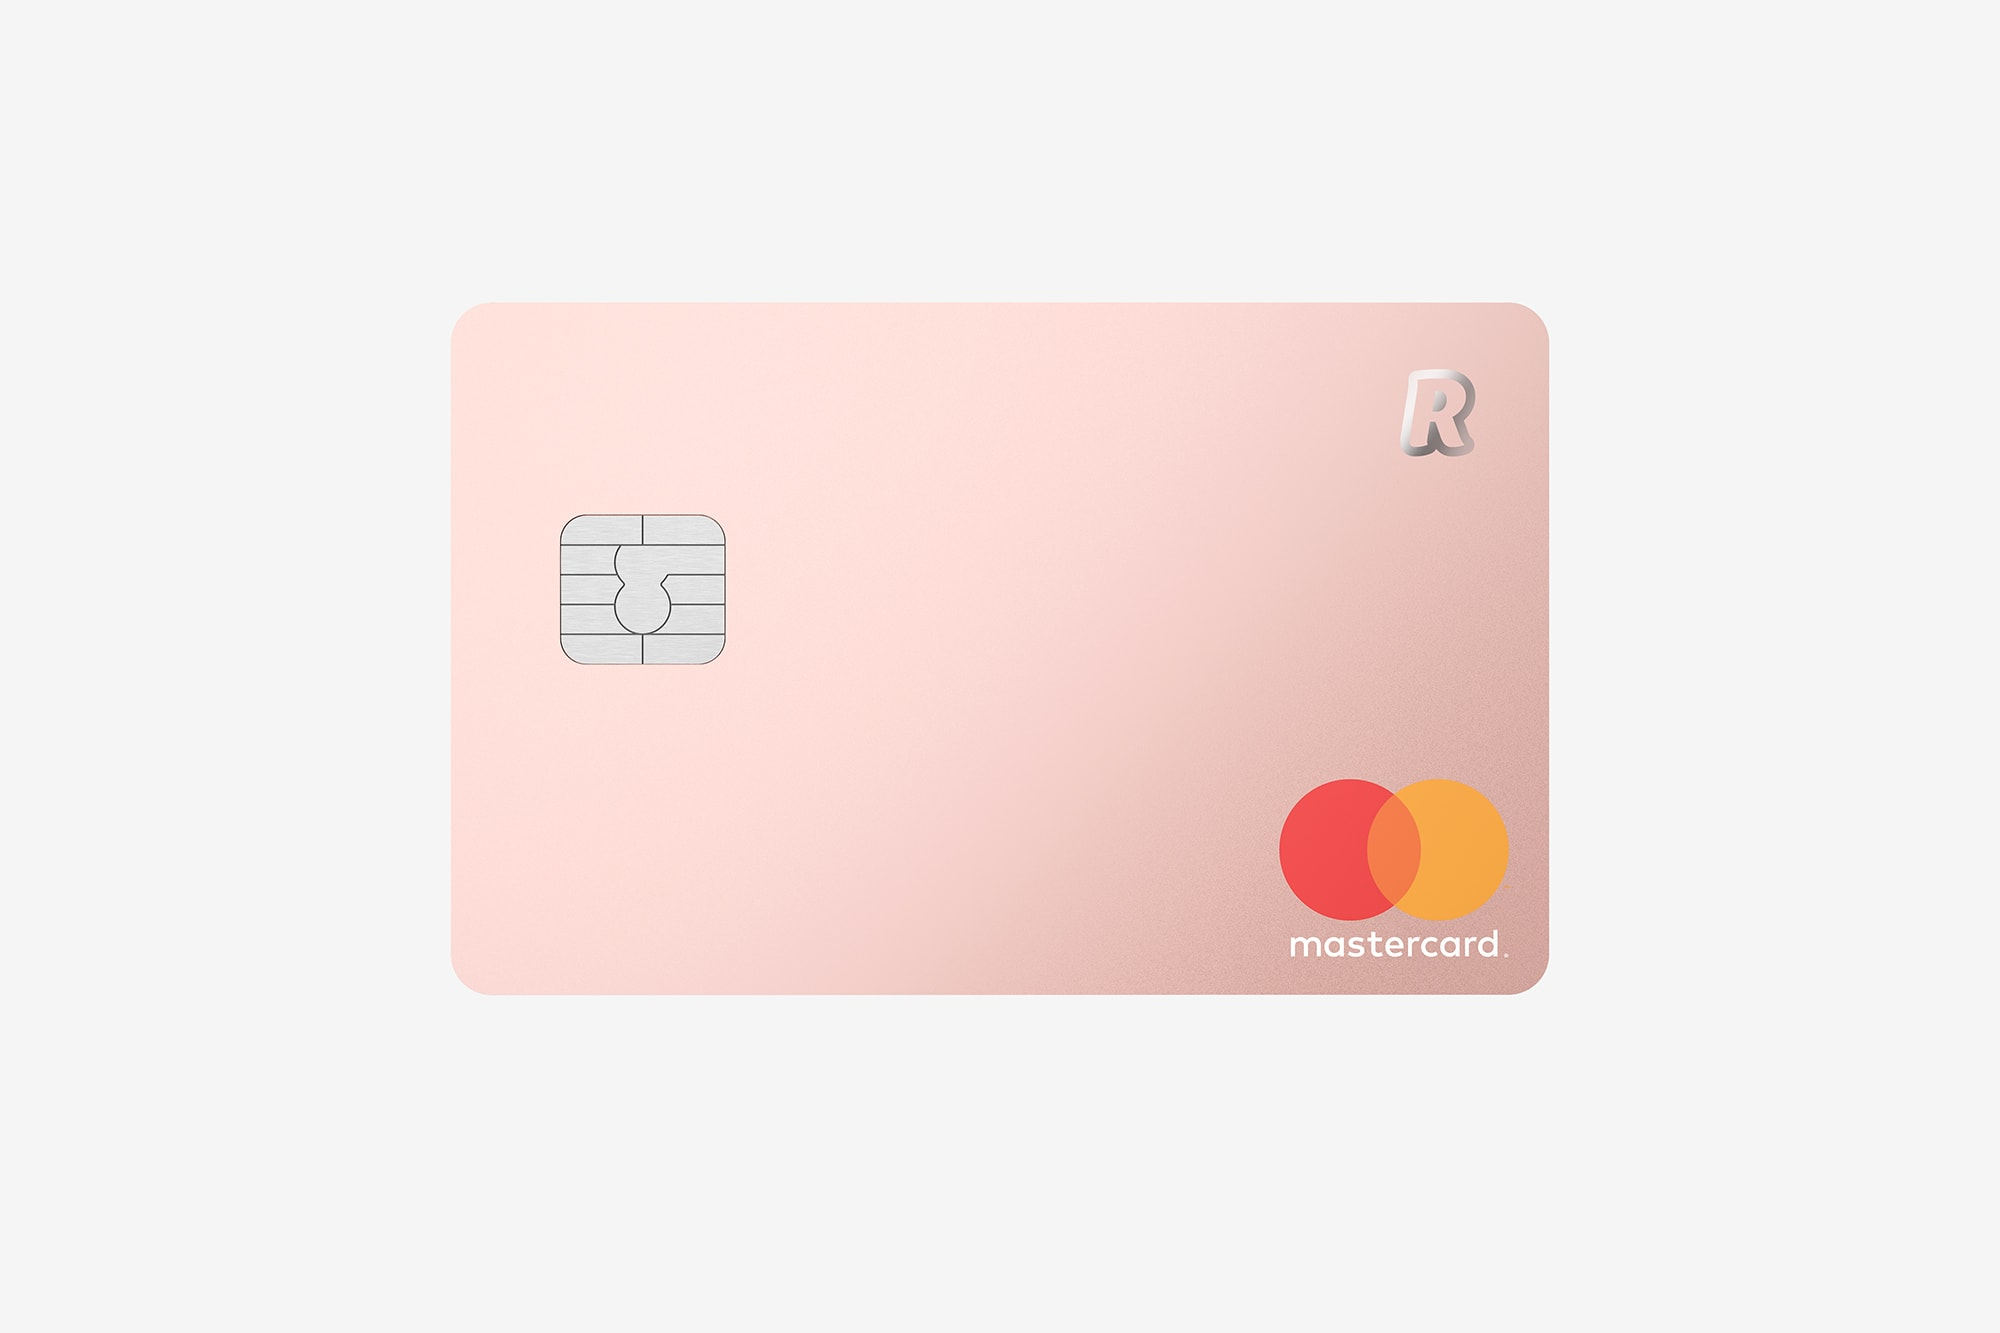 Front view of the Revolut Premium Bank Card showing a silver chip, a mastercard logo and Revolut logo, metallic pink.